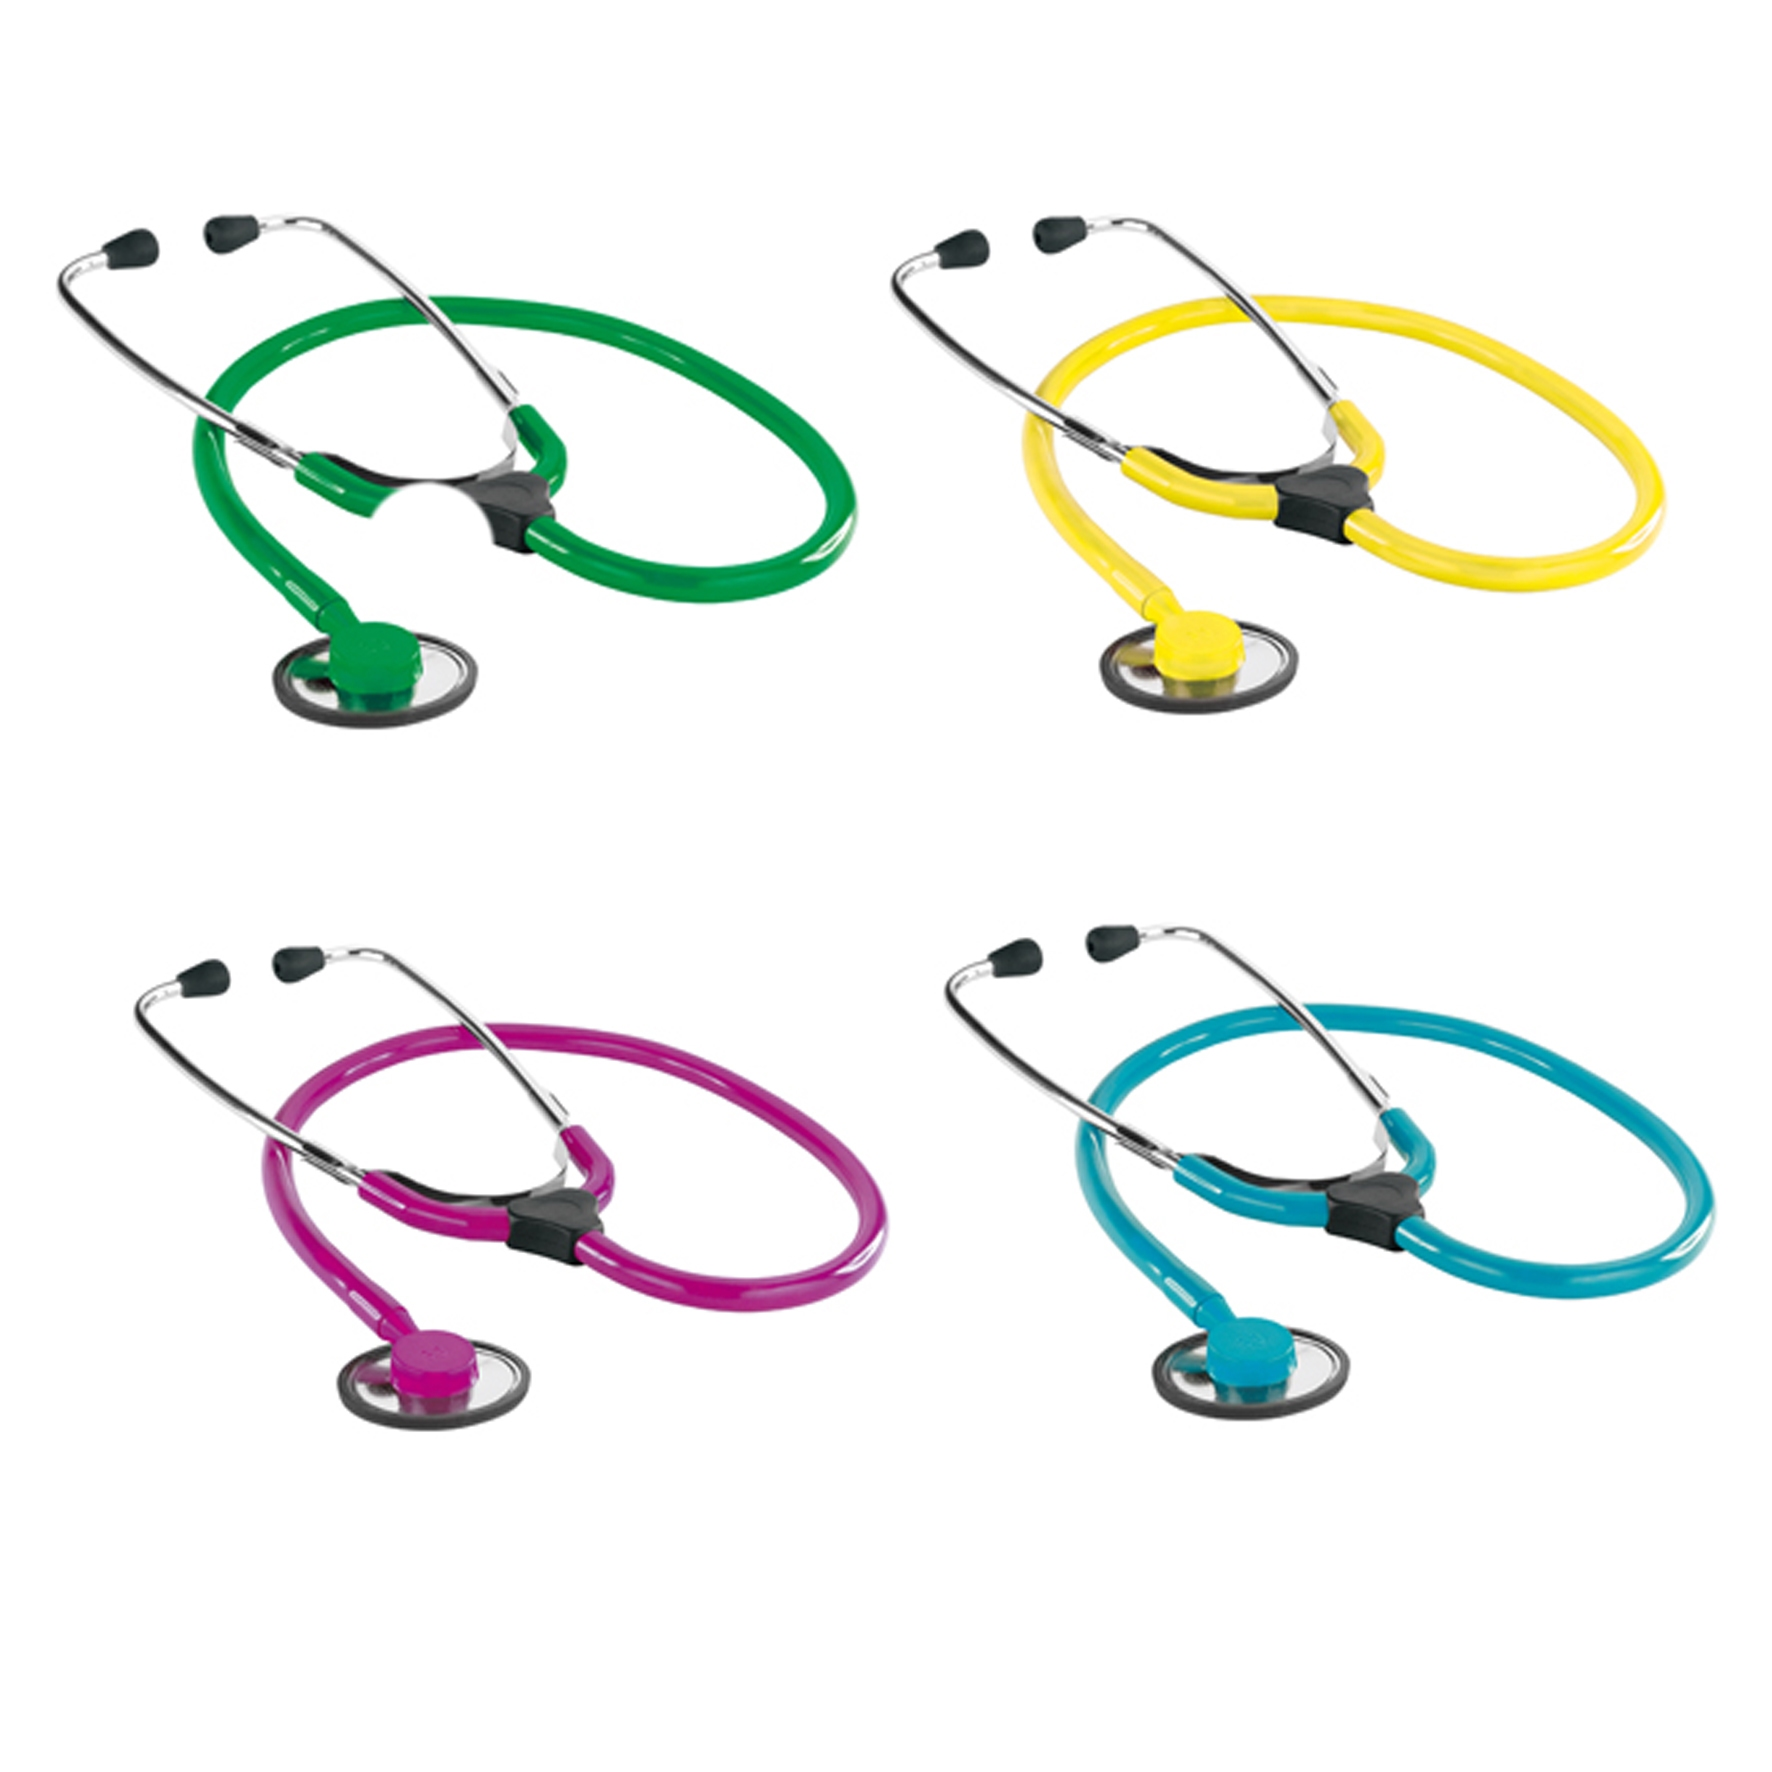 Plano stéthoscopes